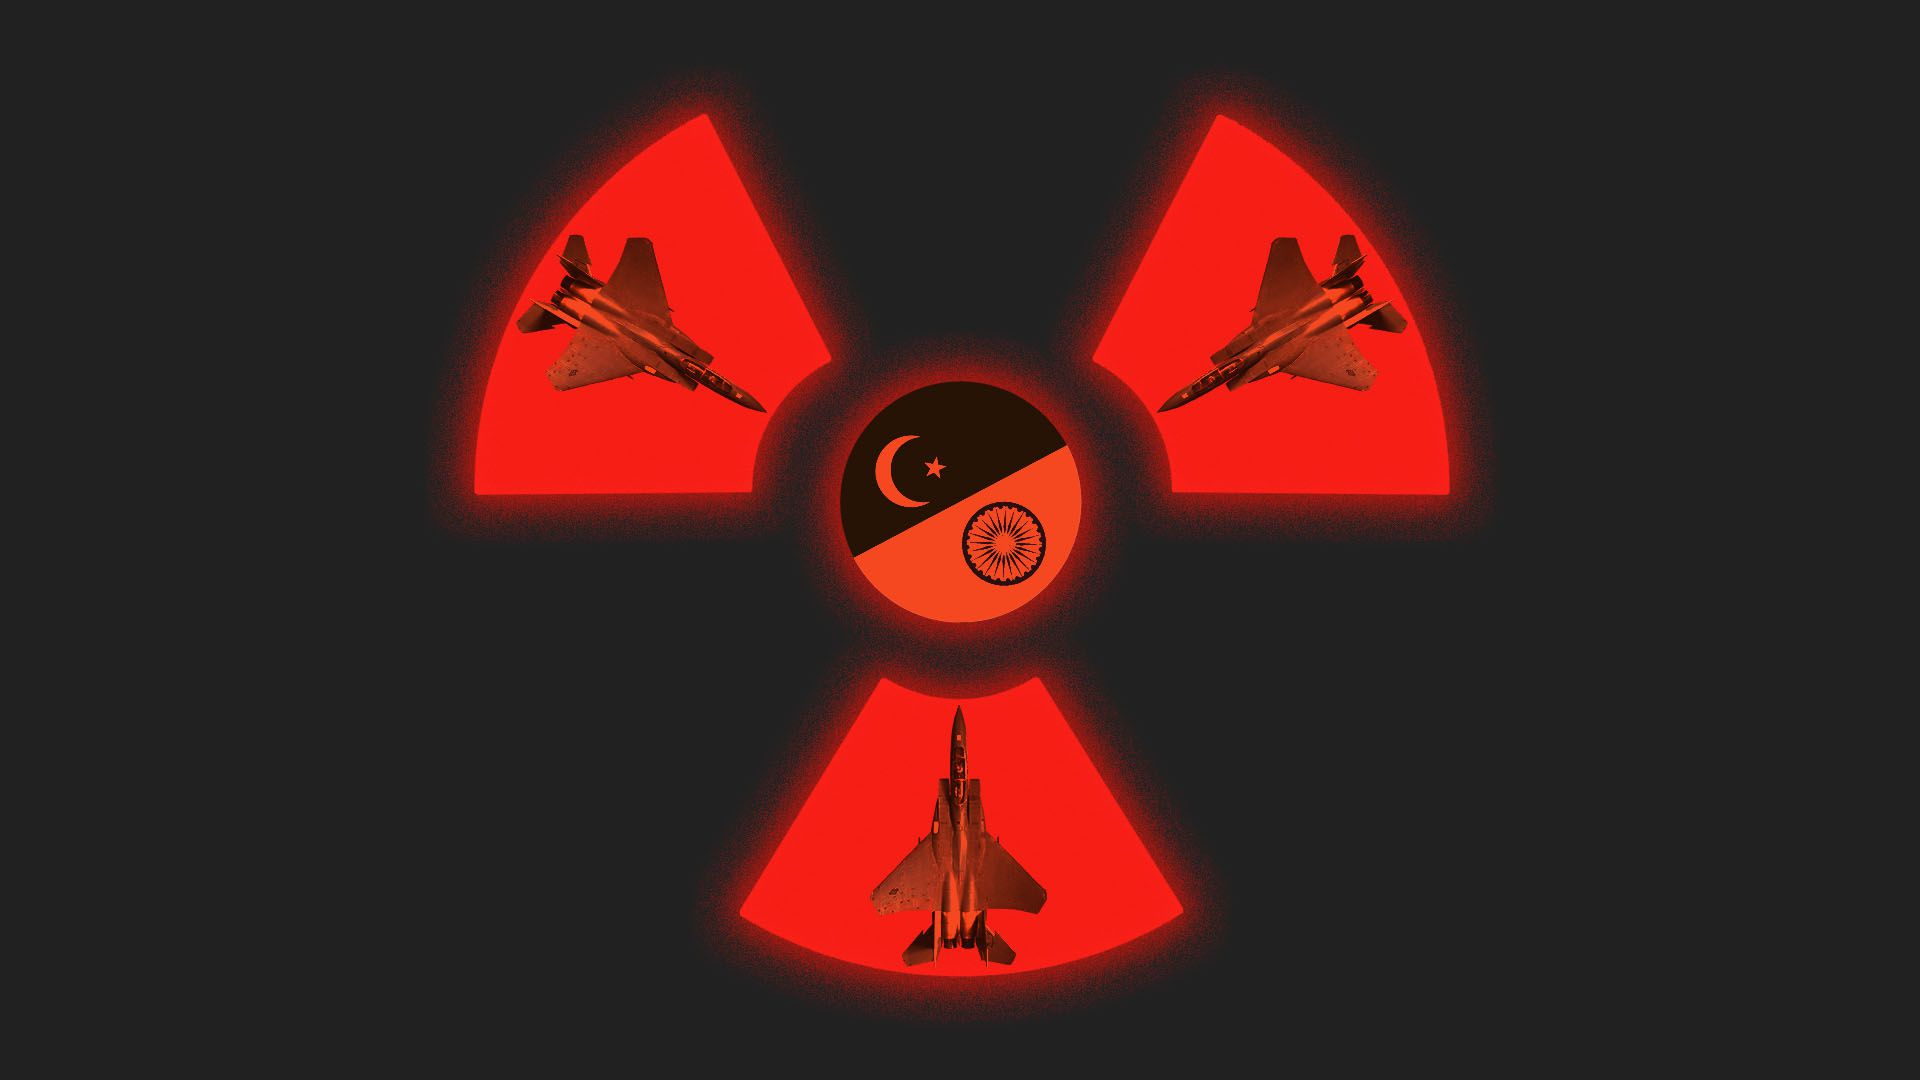 Illustration of nuclear war symbol made up of fighter jets and flags of Pakistan and India